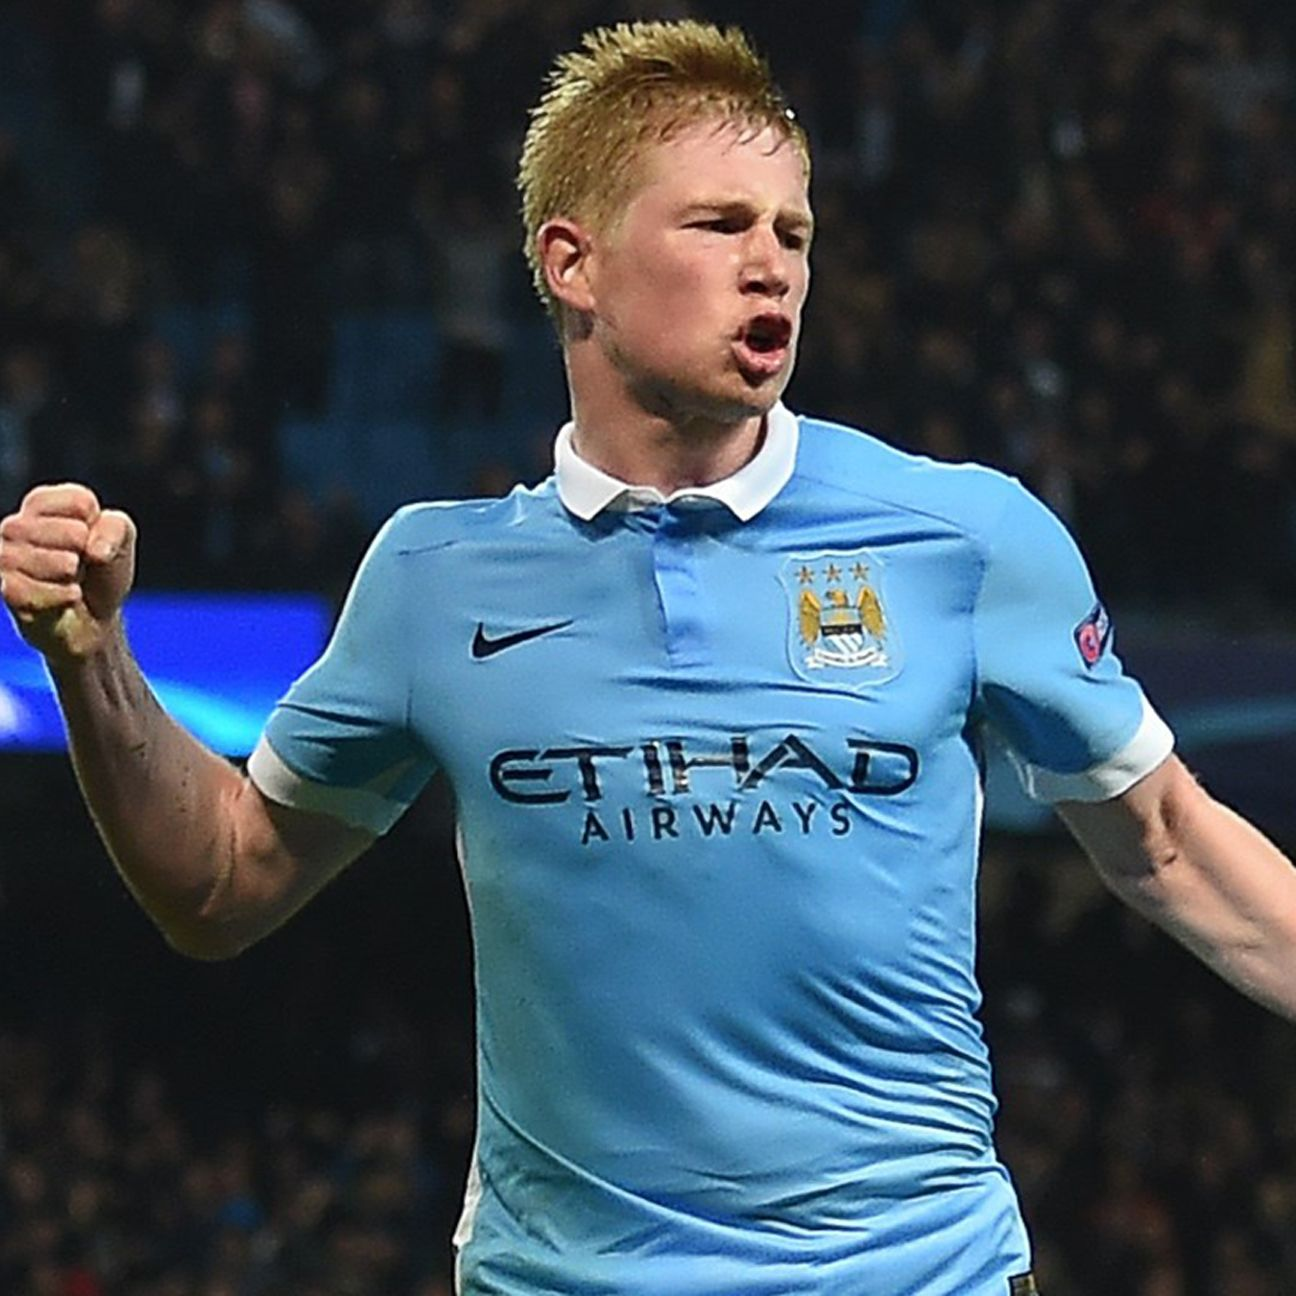 Manchester City midfielder Kevin De Bruyne should get his fair of chances against struggling Swansea.